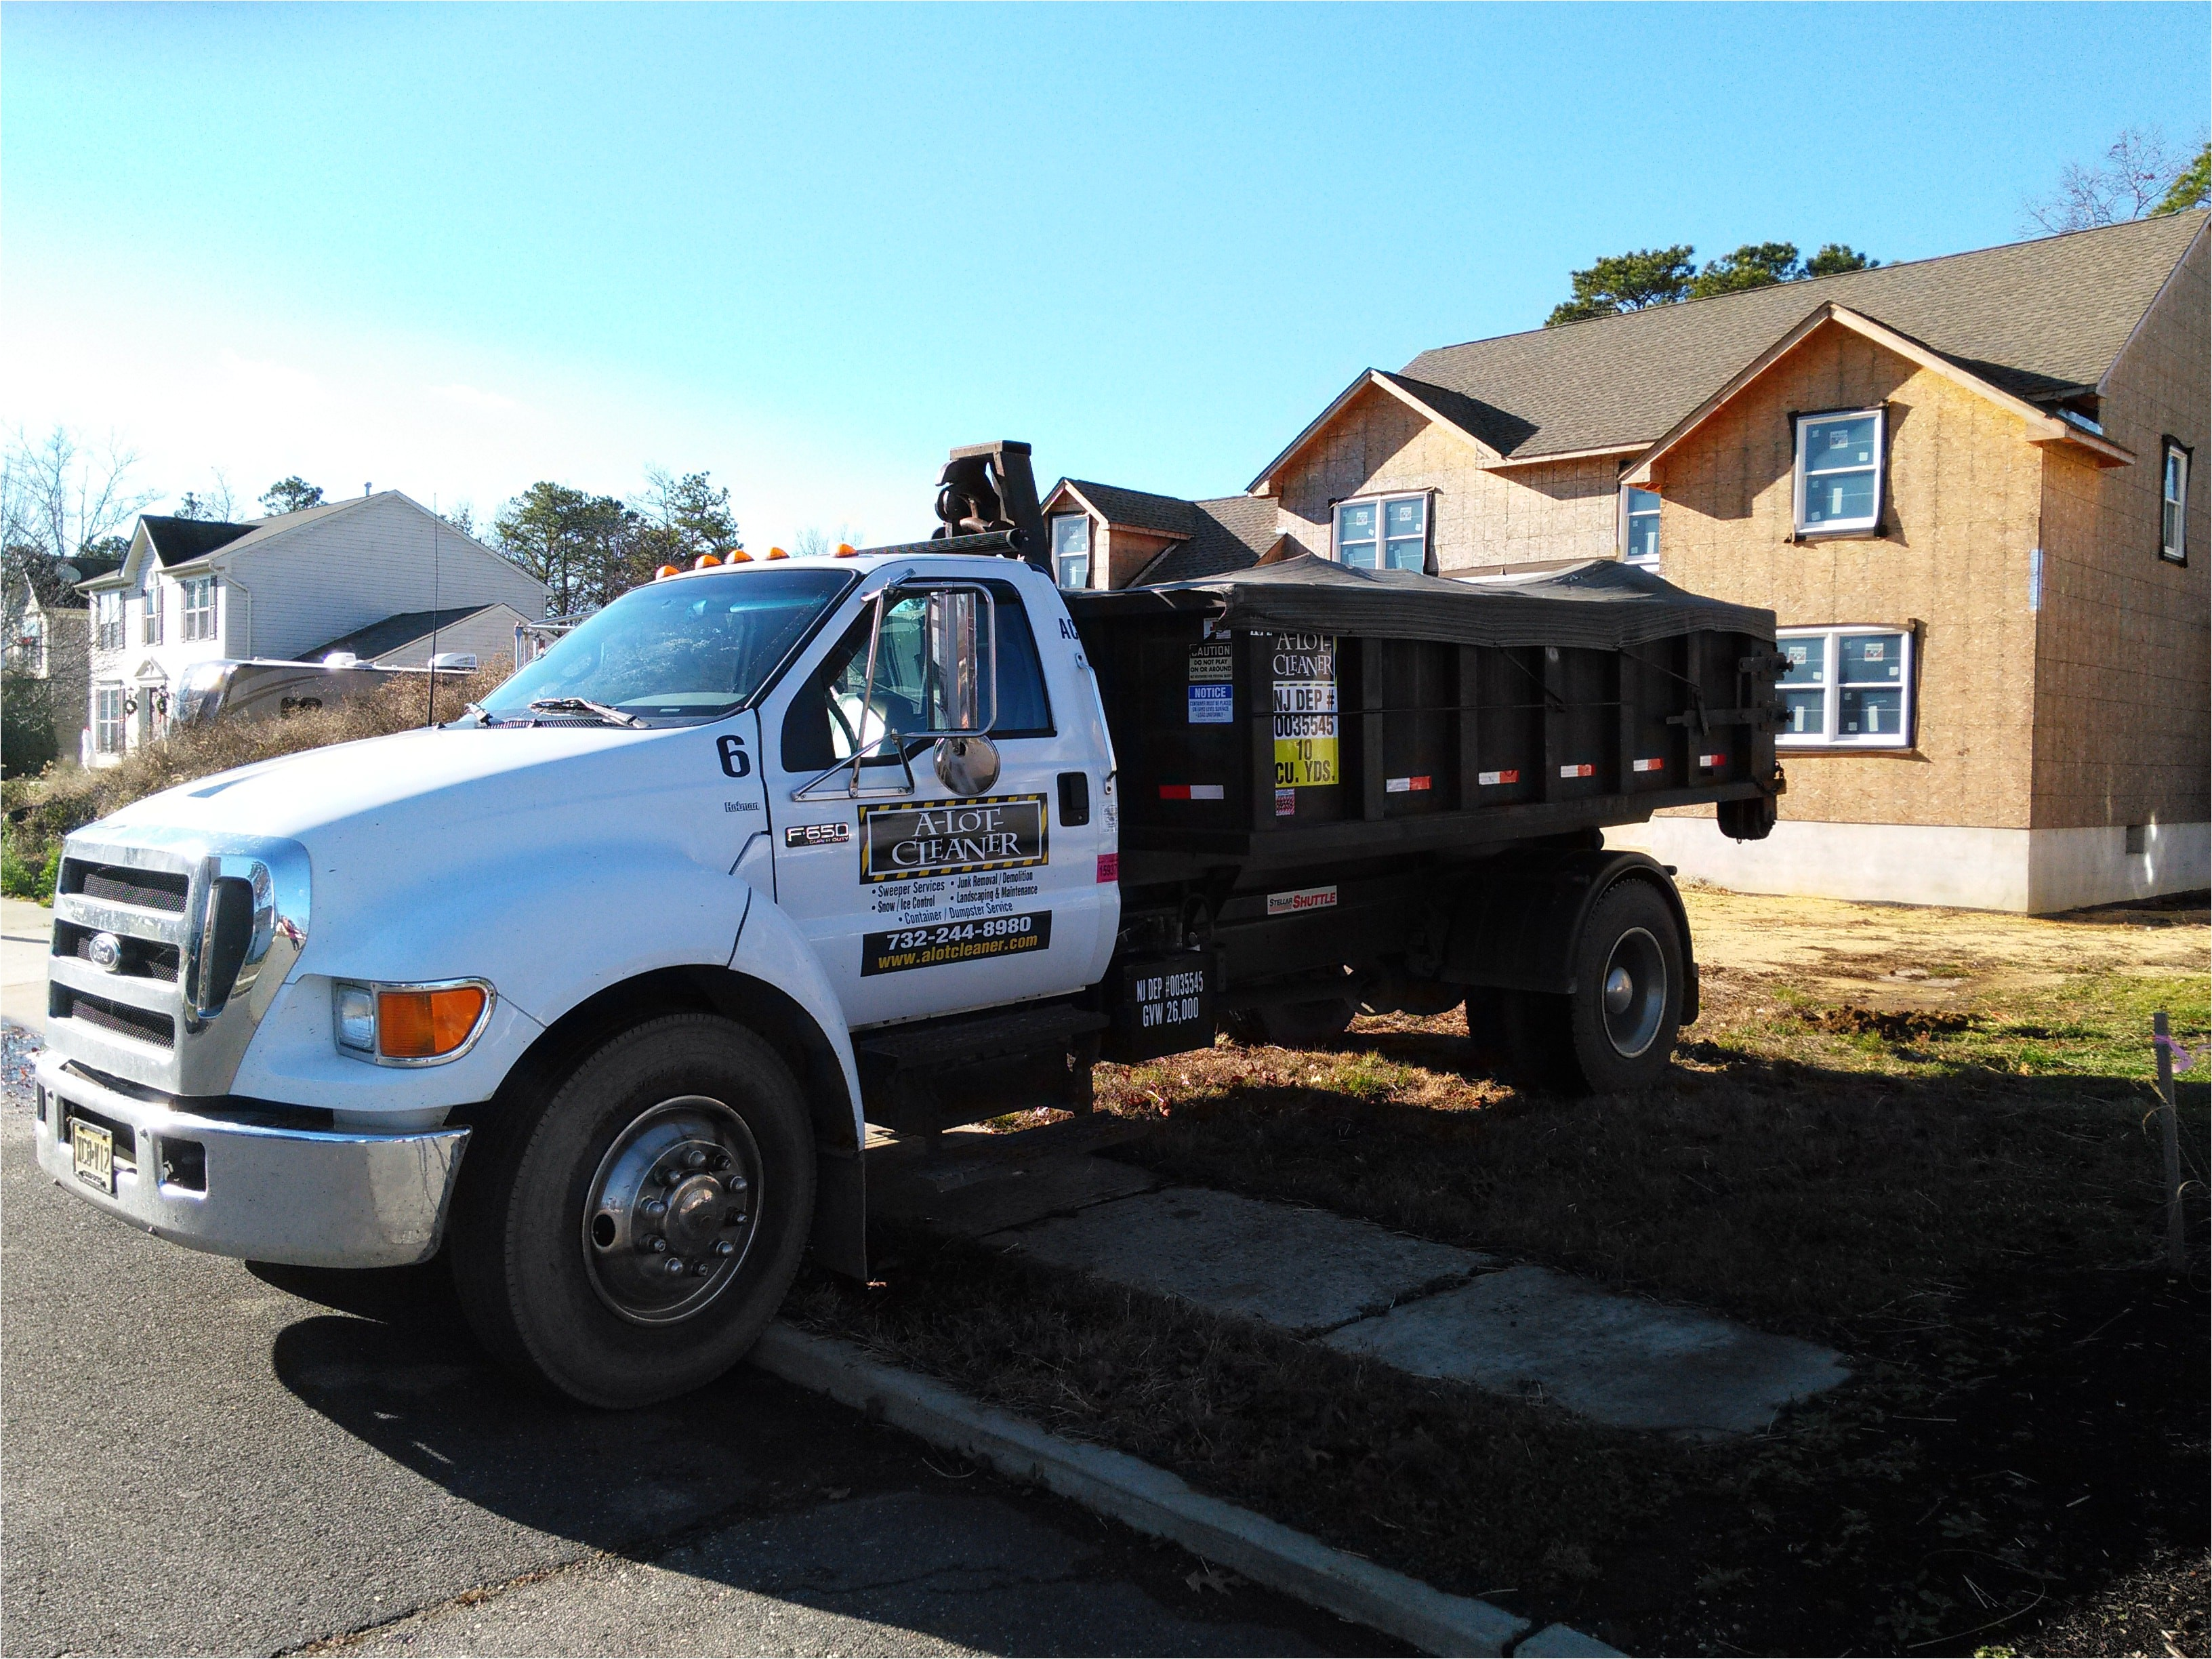 Dumpster Rental Brick Nj Dumpster Rental Junk Removal Clean Outs A Lot Cleaner Inc